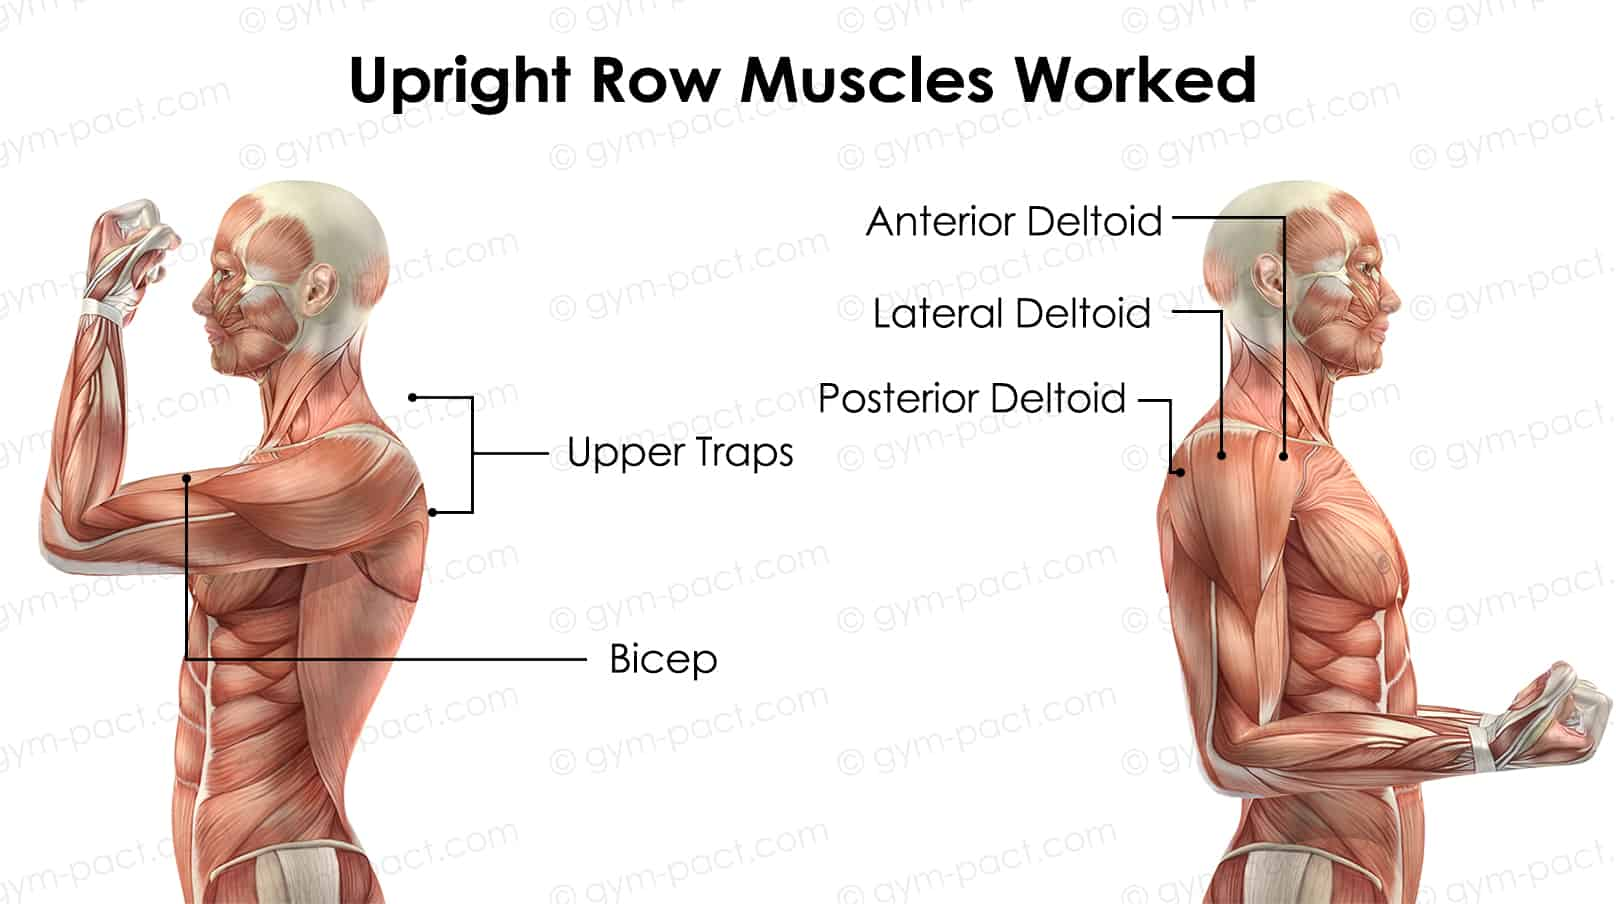 Upright Row Muscles Worked